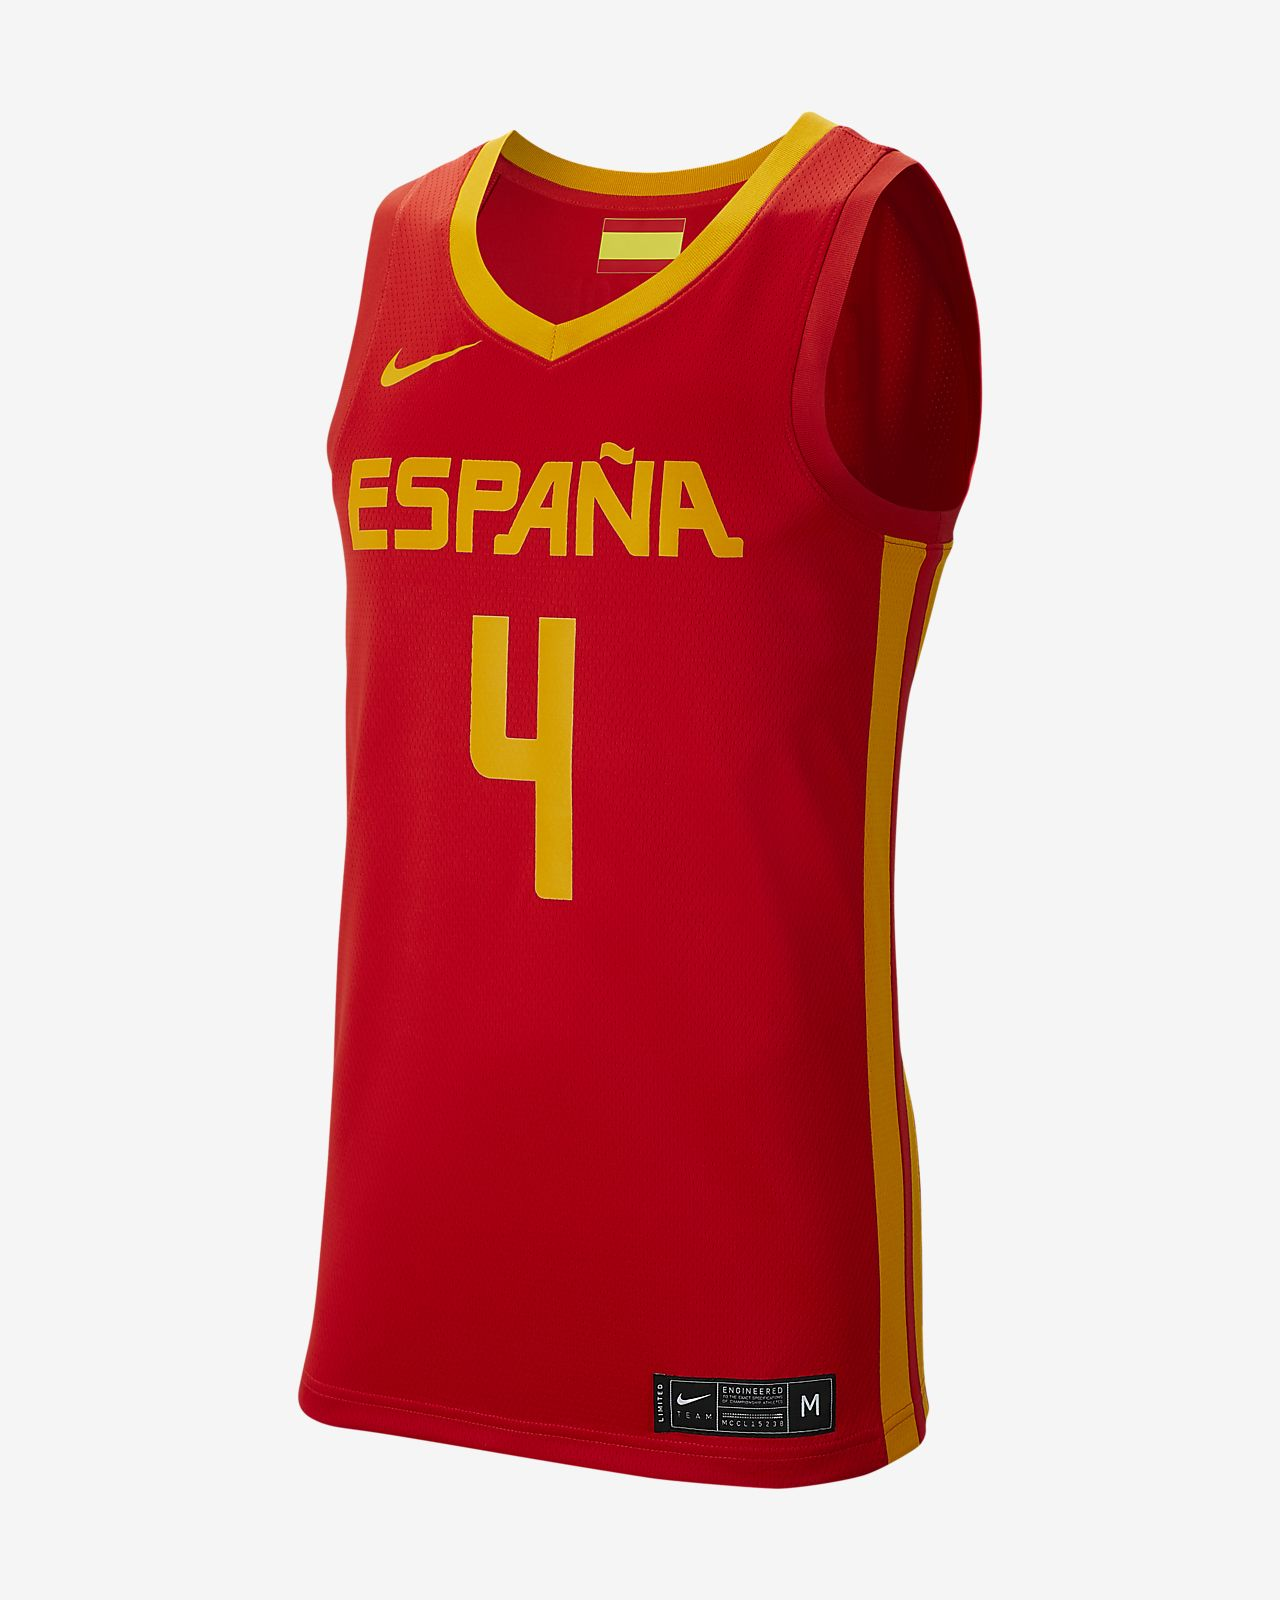 Basketjersey Spain Nike (Road) för män